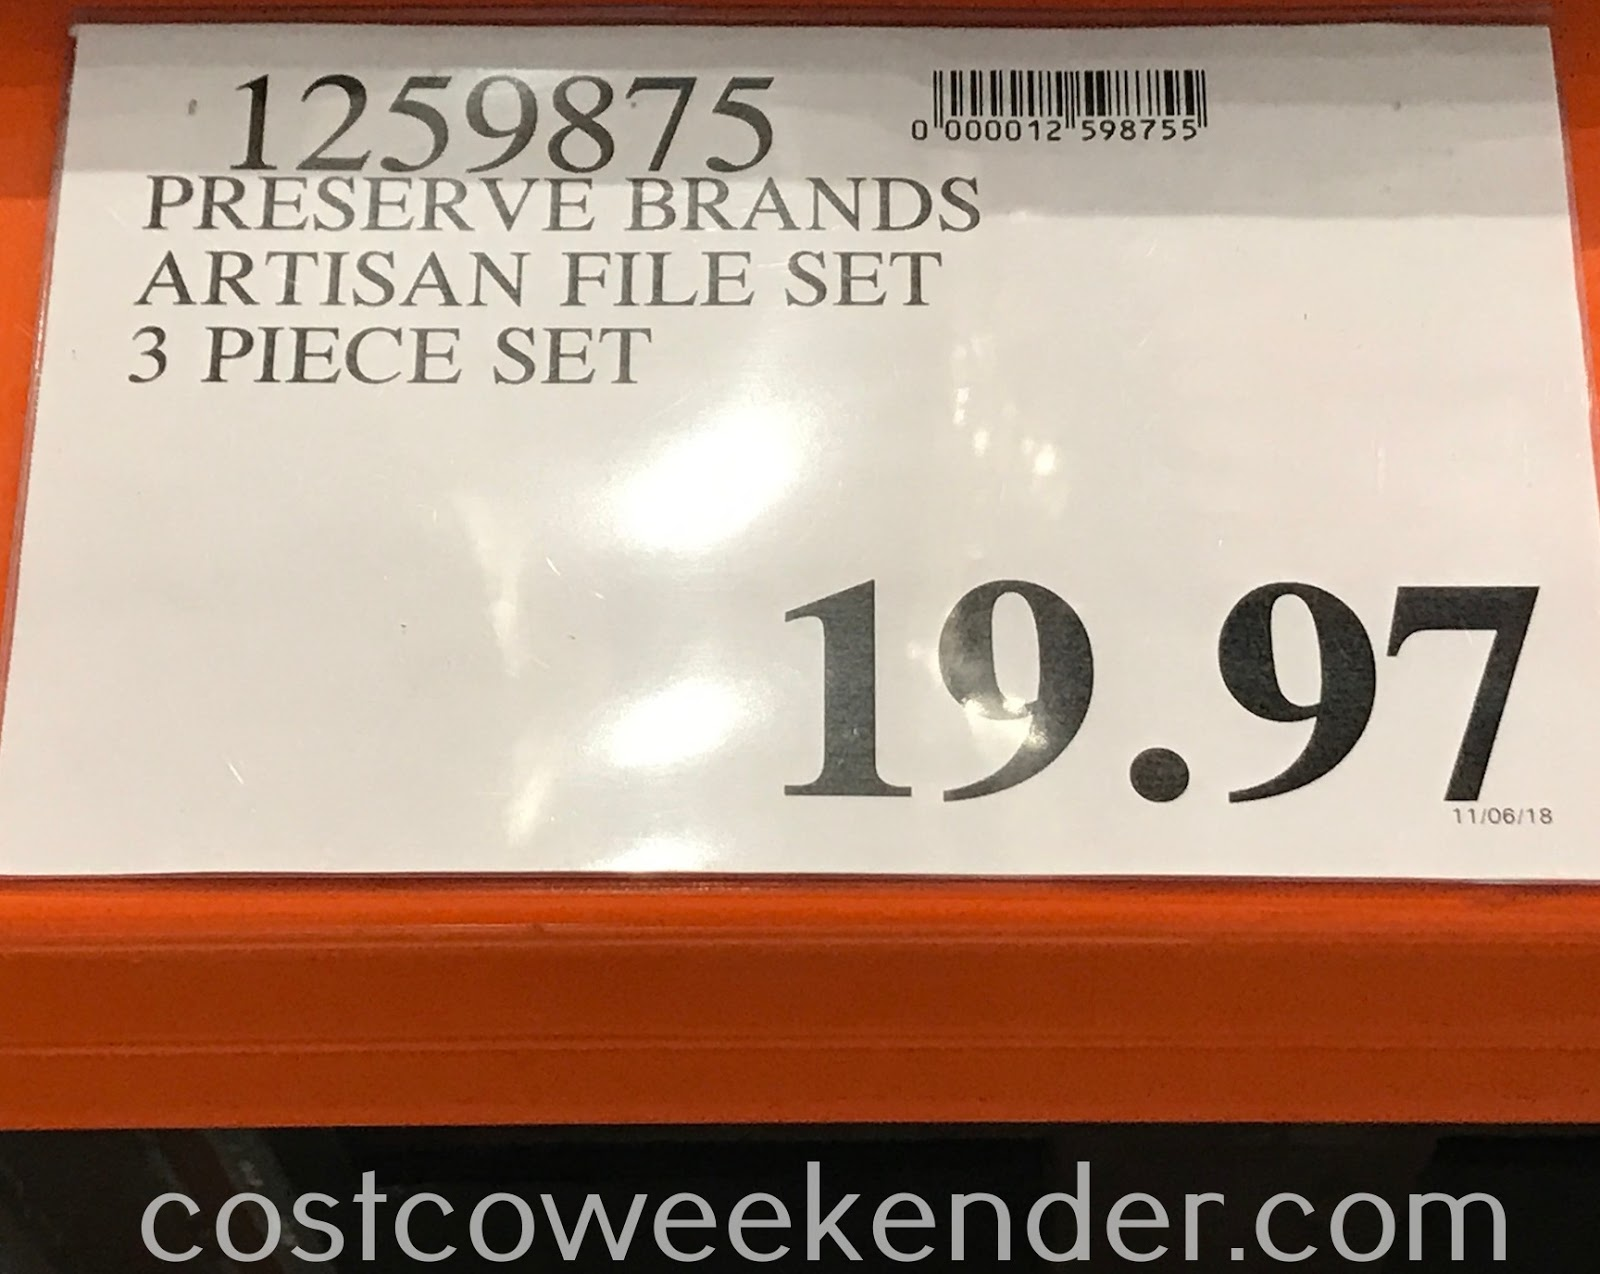 Deal for the Preserve Brands 3 Piece Artisan Desk Organization Set at Costco